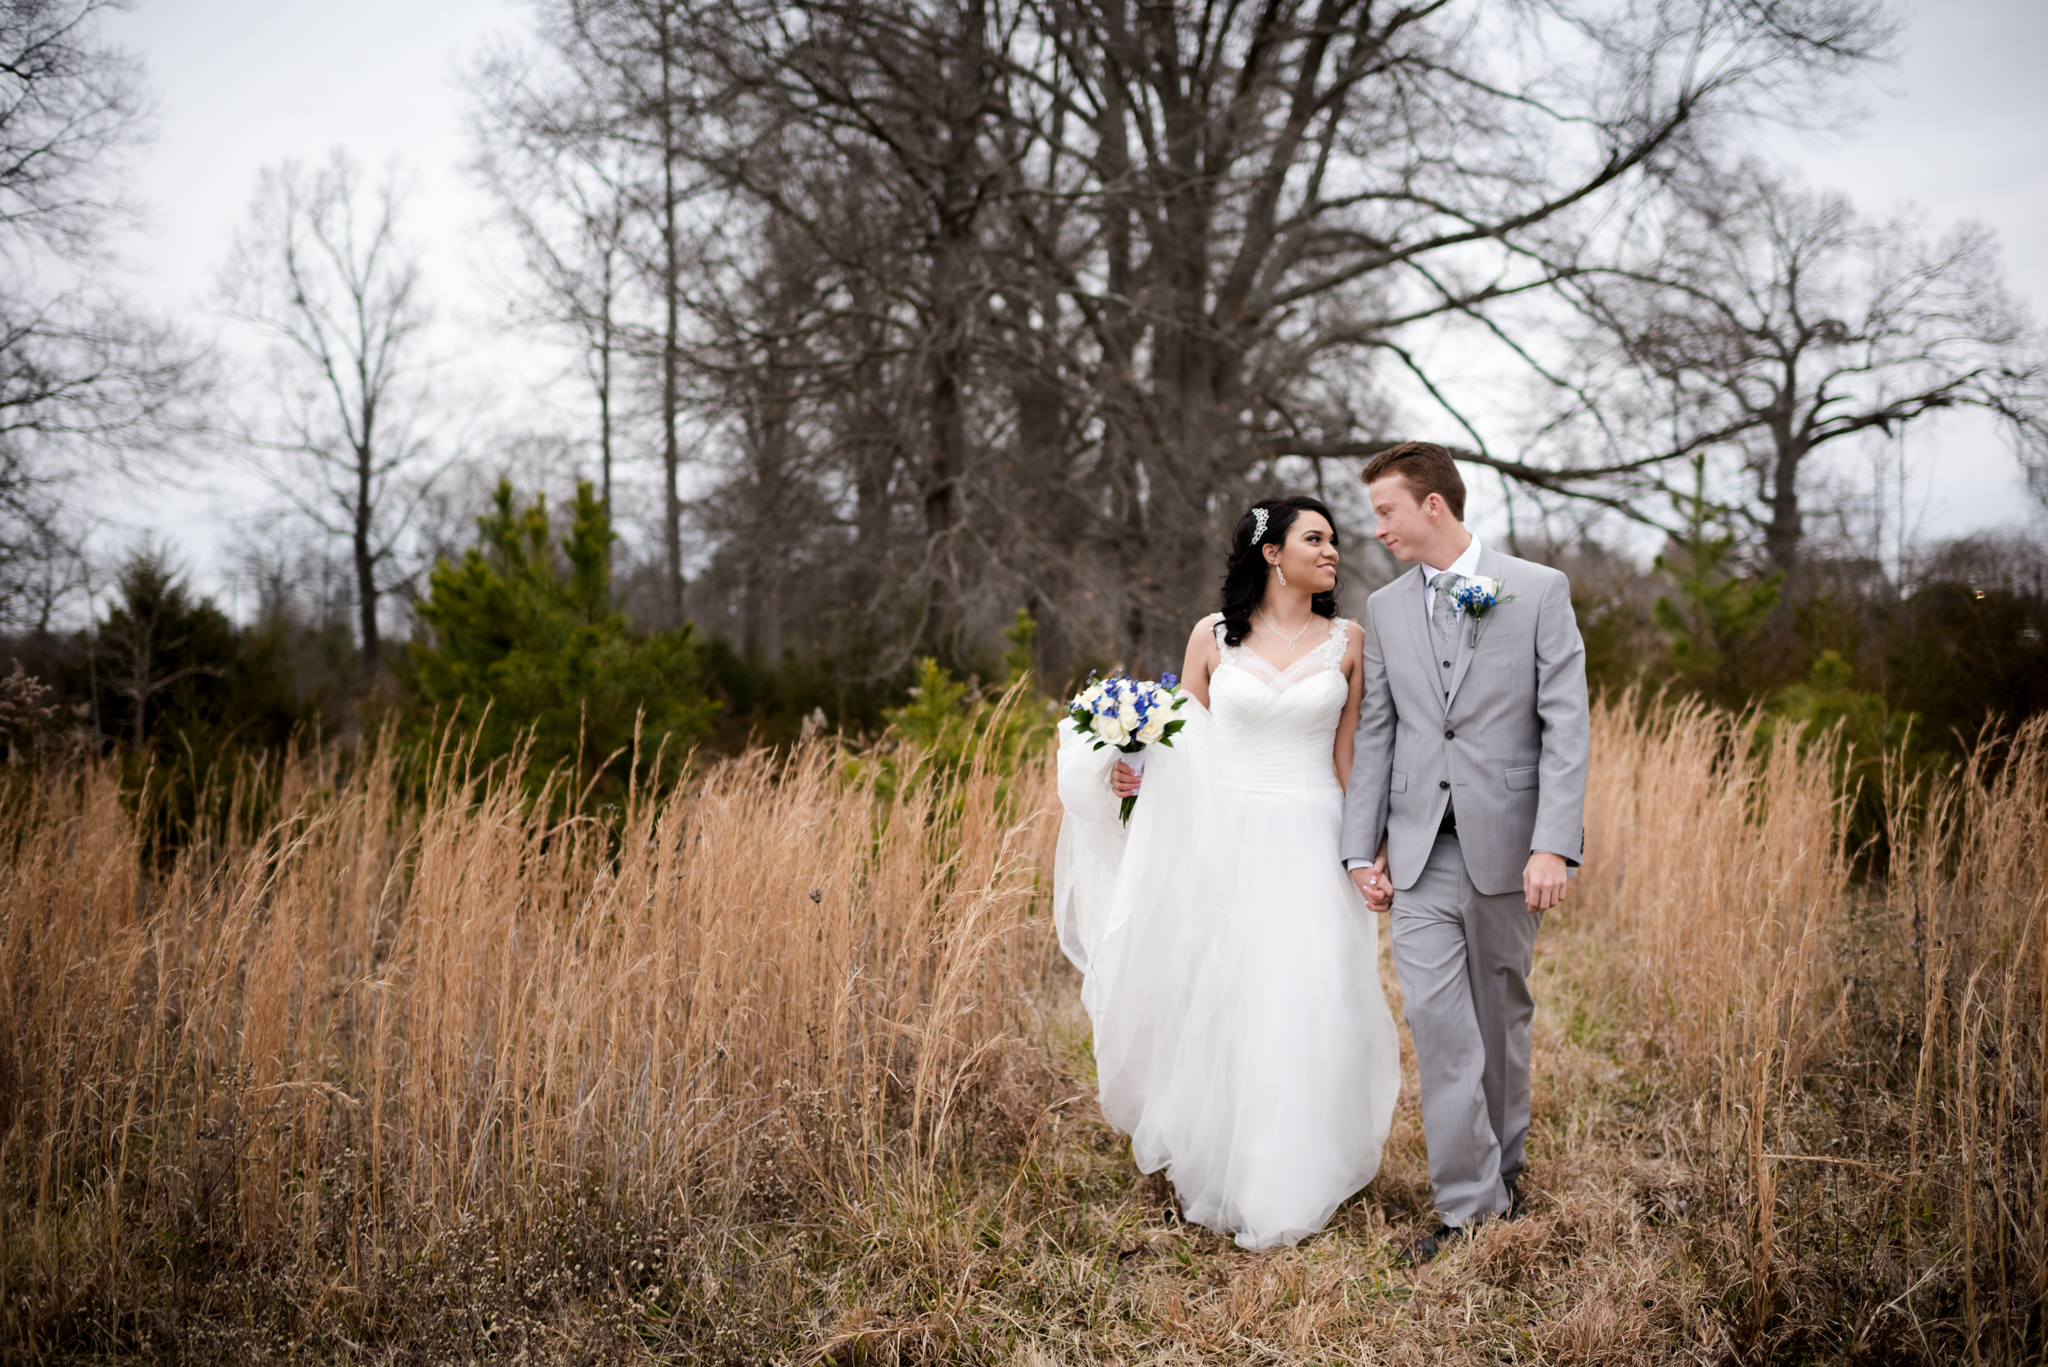 gibsonville-wedding-photography-020.jpg